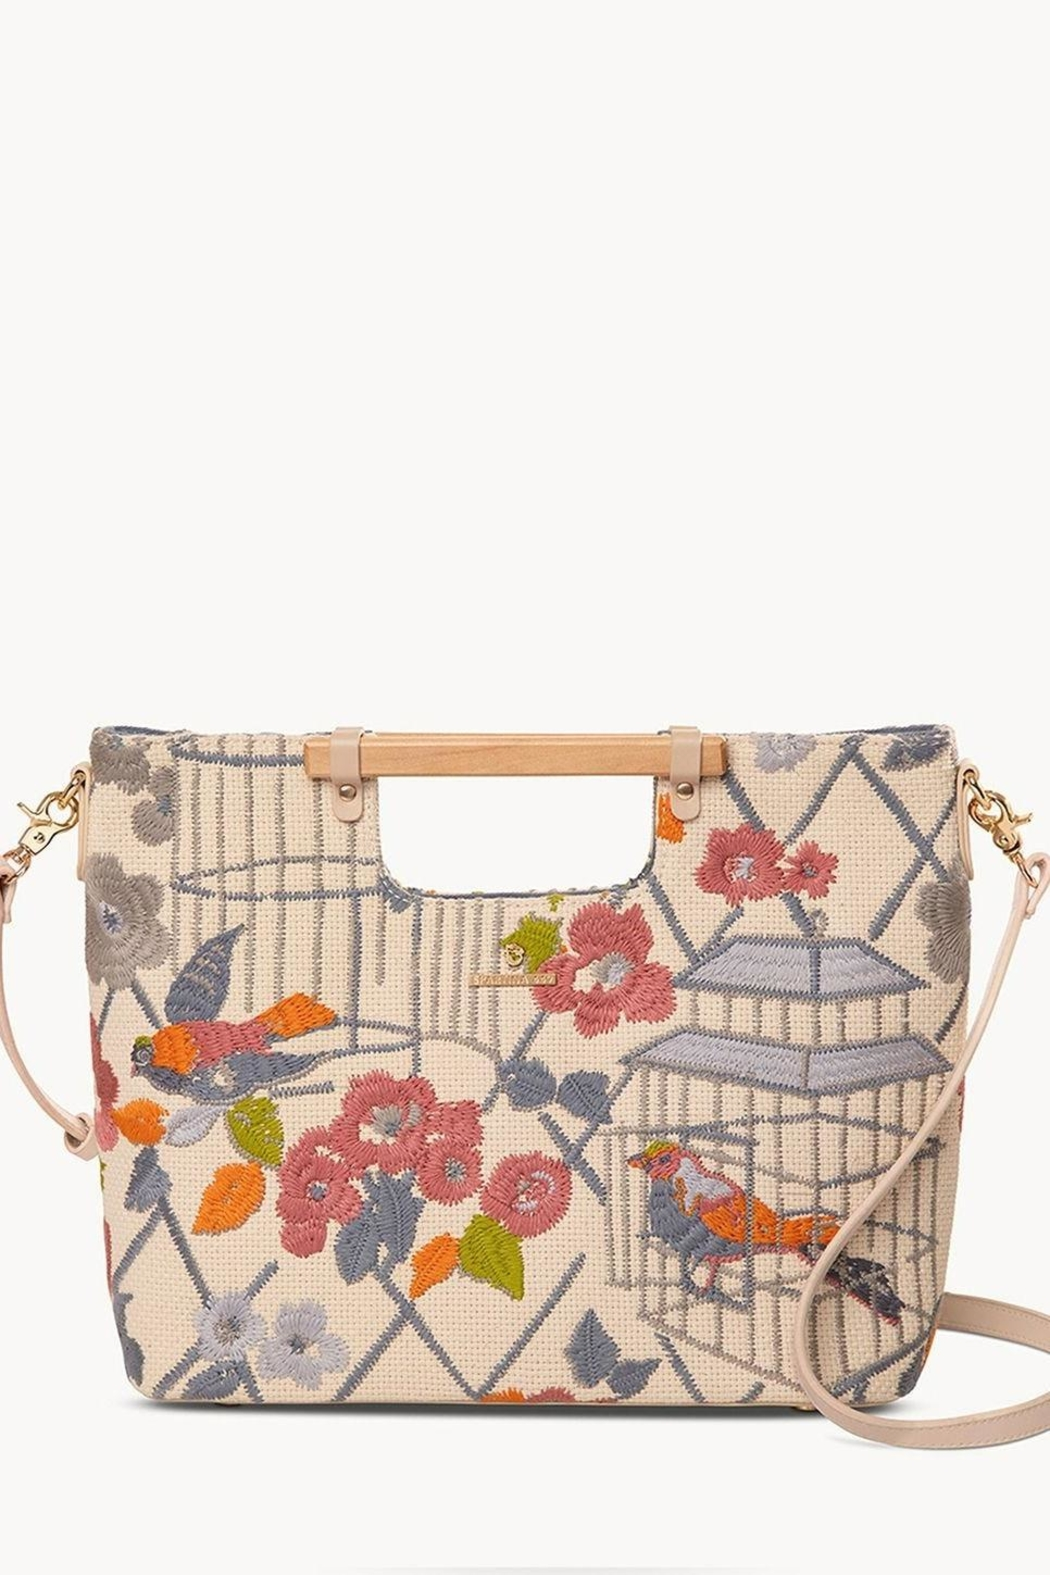 Spartina 449 Songbird Embroidered Tote - Main Image